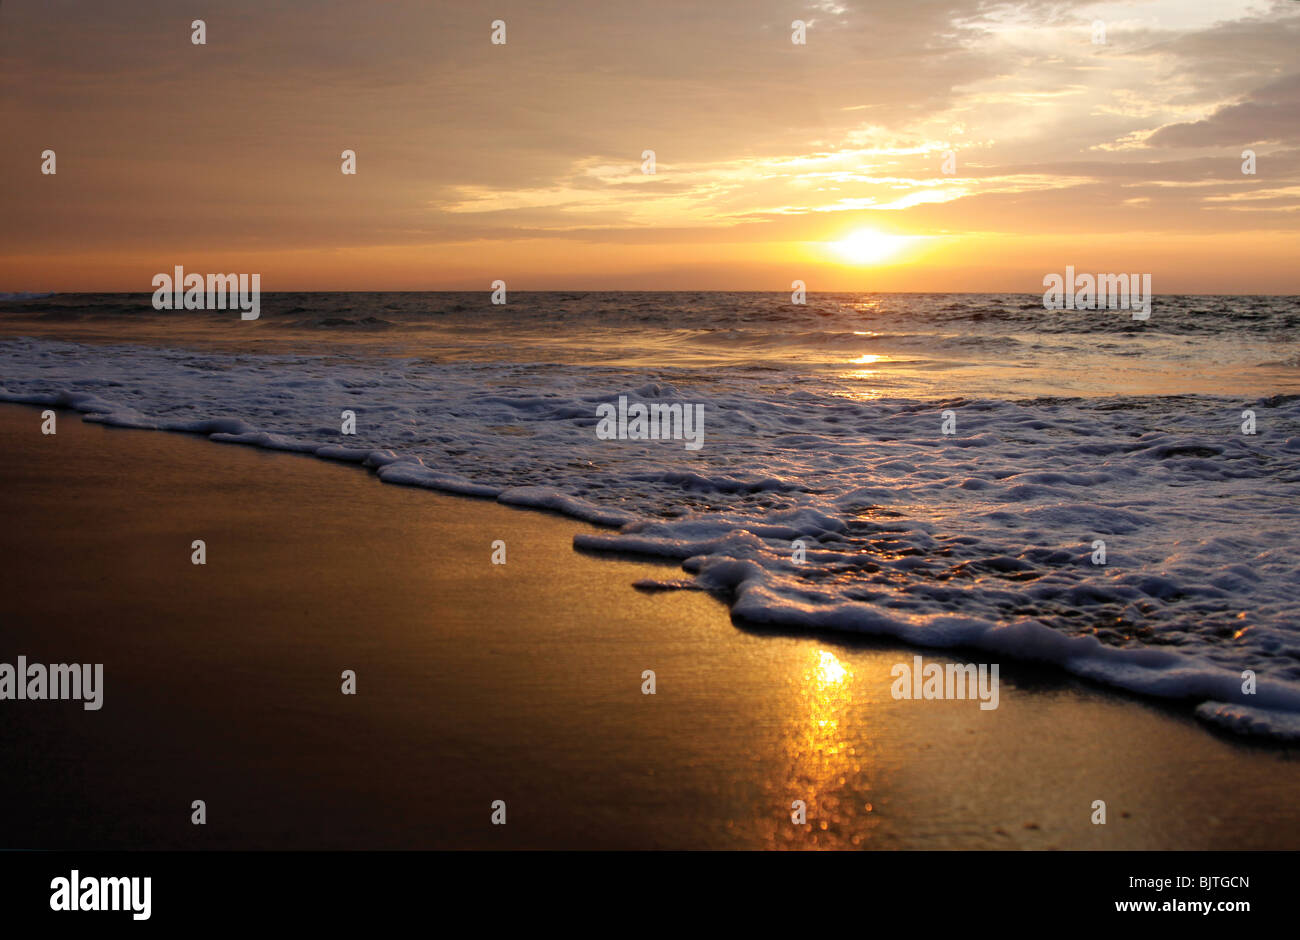 Sunset over the Atlantic ocean on the coastline of southern Angola. Stock Photo